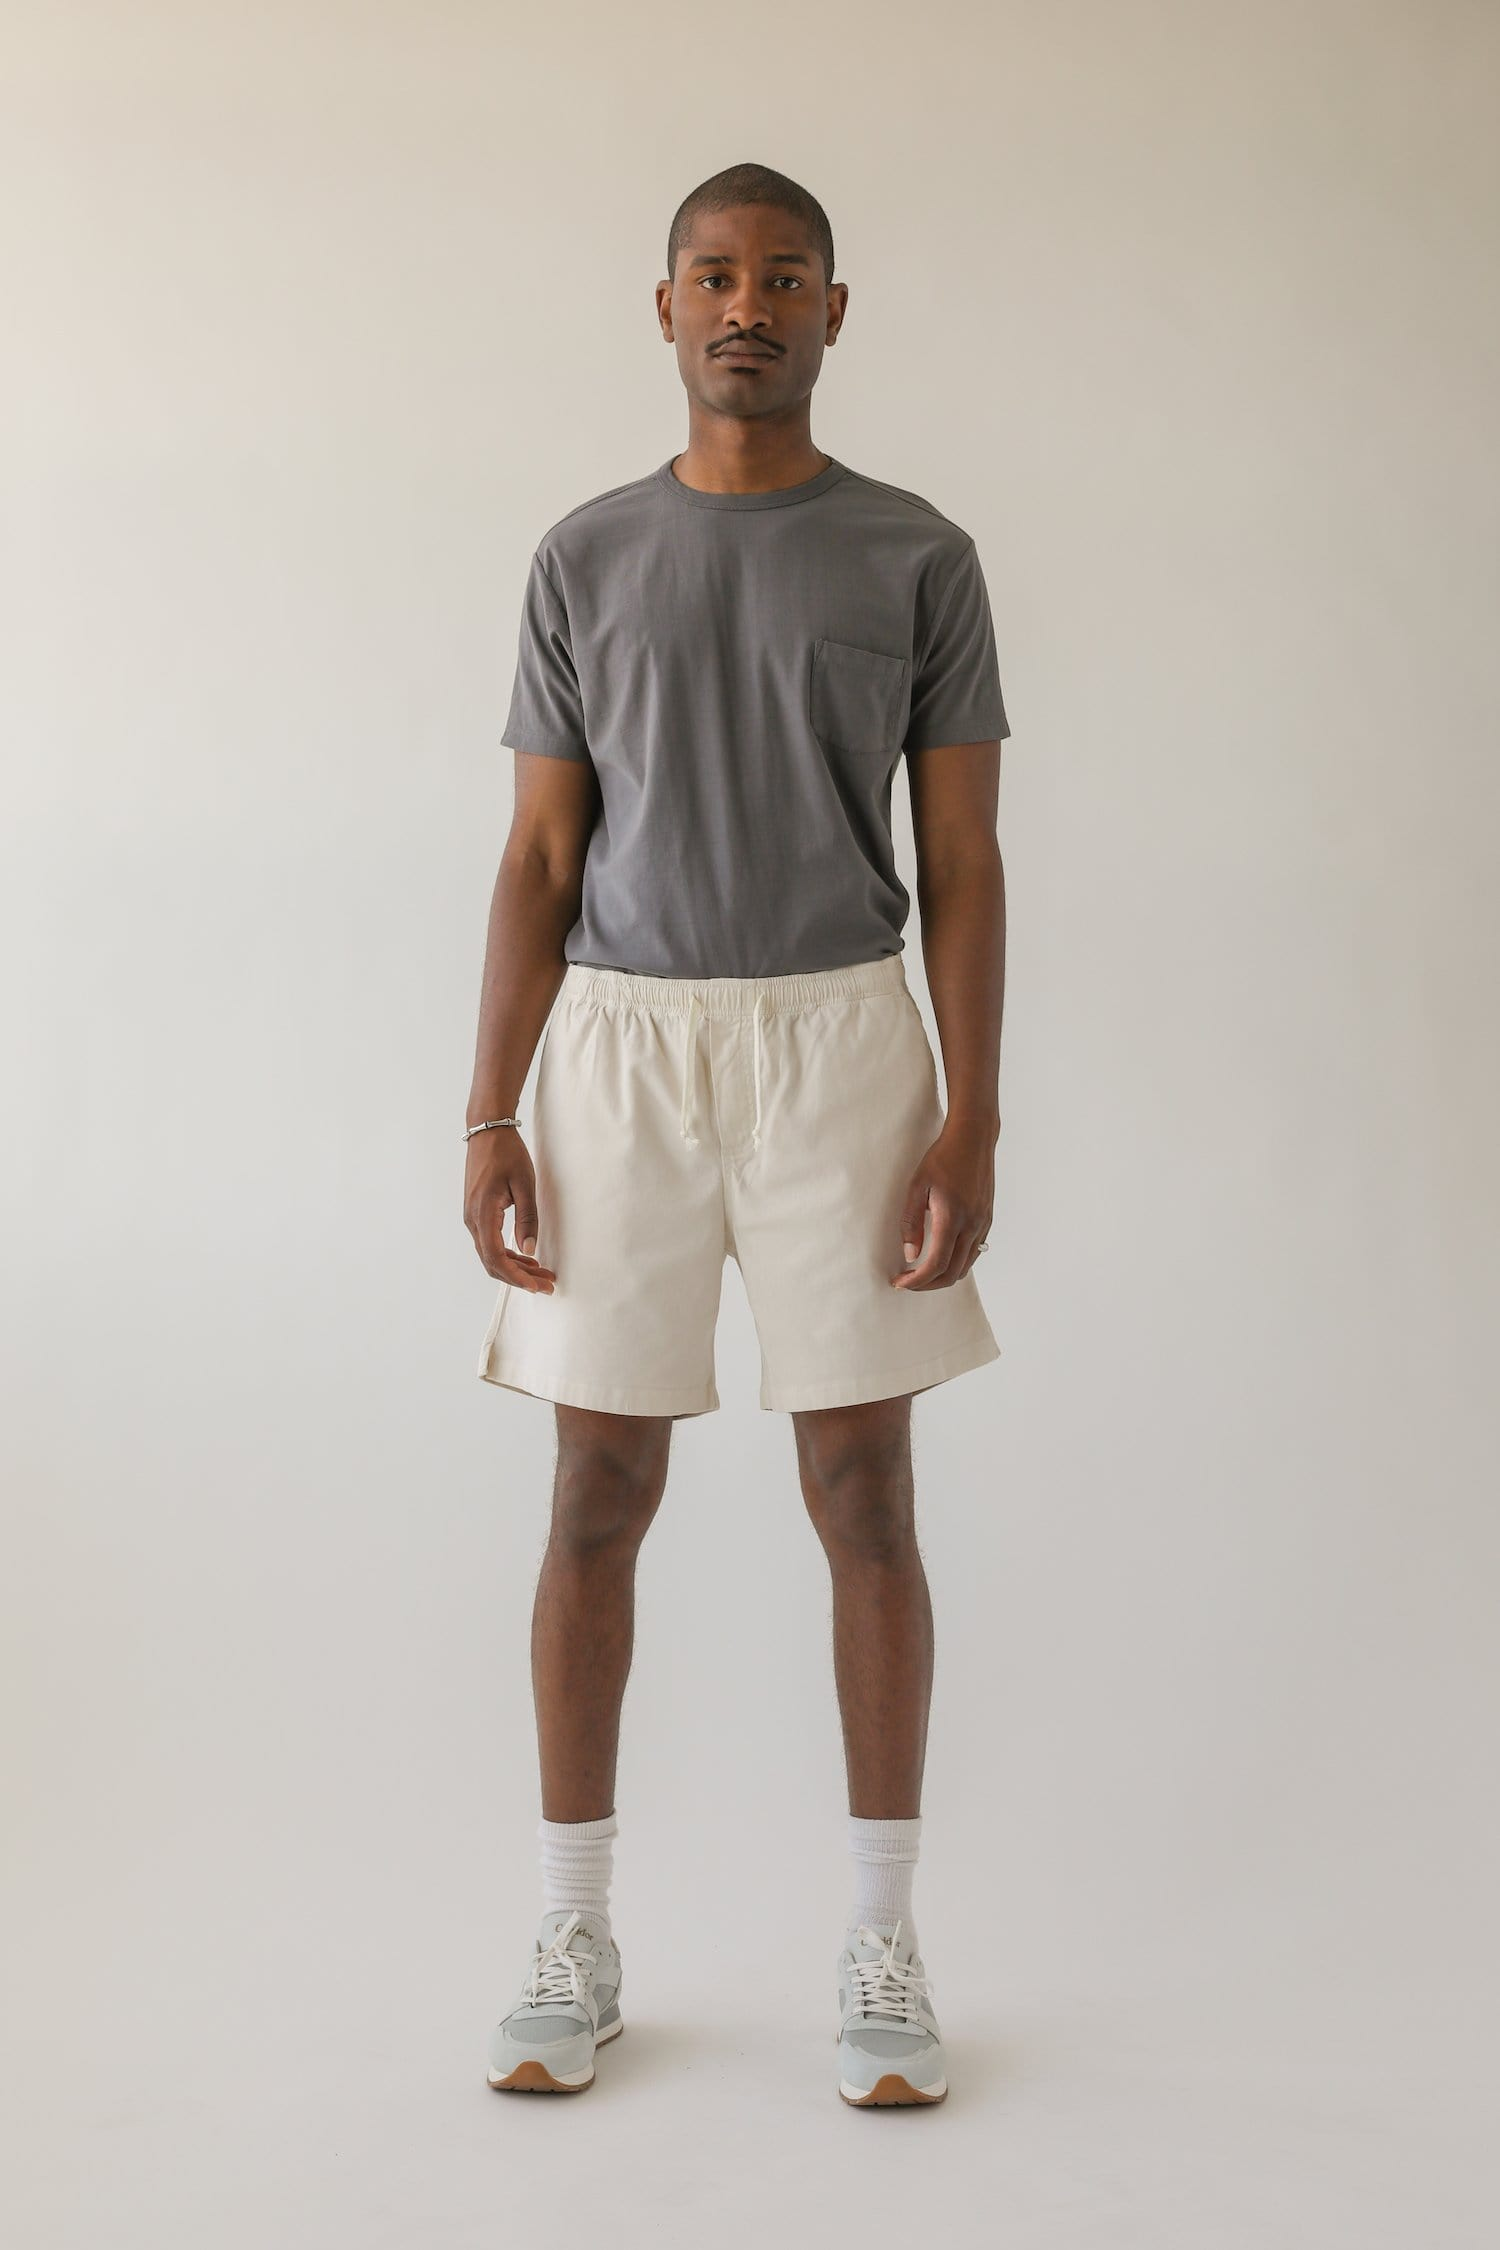 SSB Natural Draw String Shorts